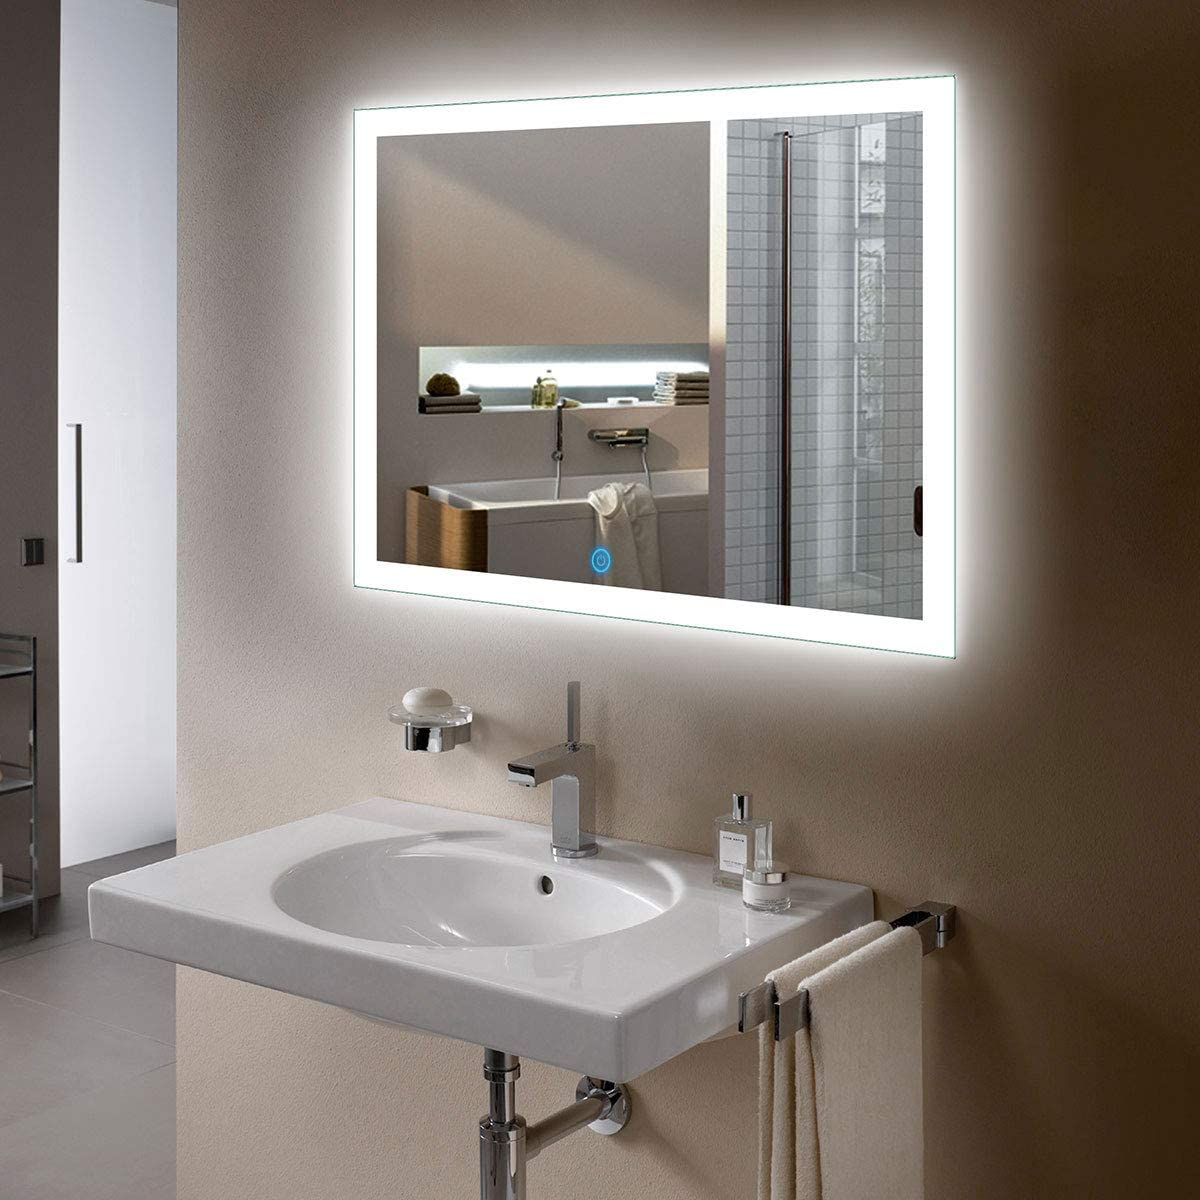 D-HYH Horizontal Rectangle Illuminated Bathroom Wall Mirror White Mirror with Lights with Touch Button 36 x 28 Inch D-N031-I